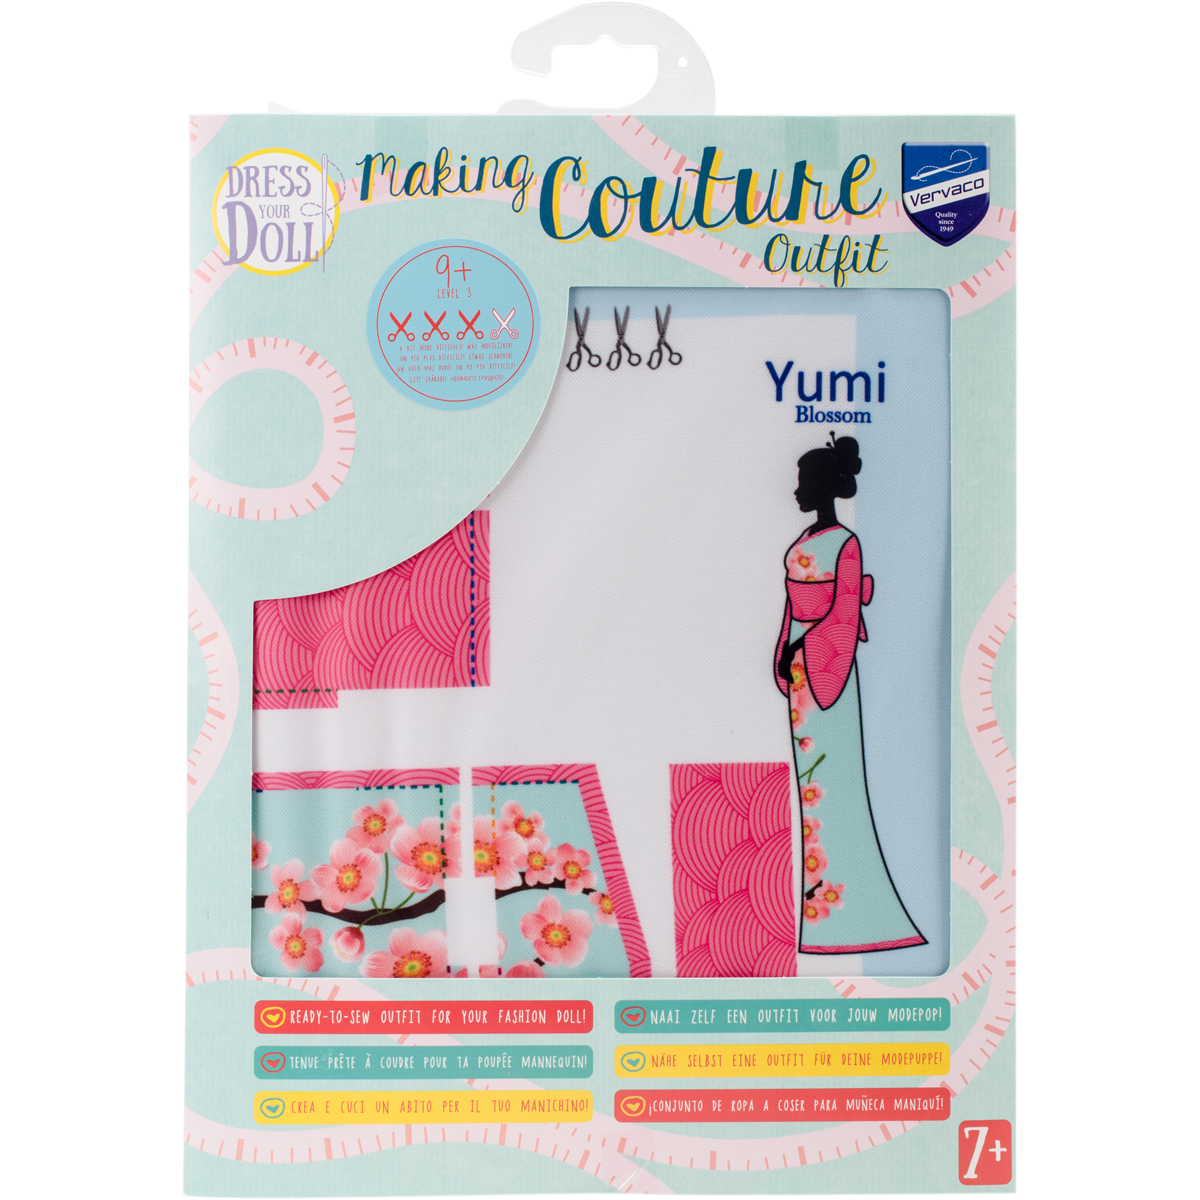 Dress Your Doll Making Couture Outfit Set-Yumi Blossom - image 1 de 1